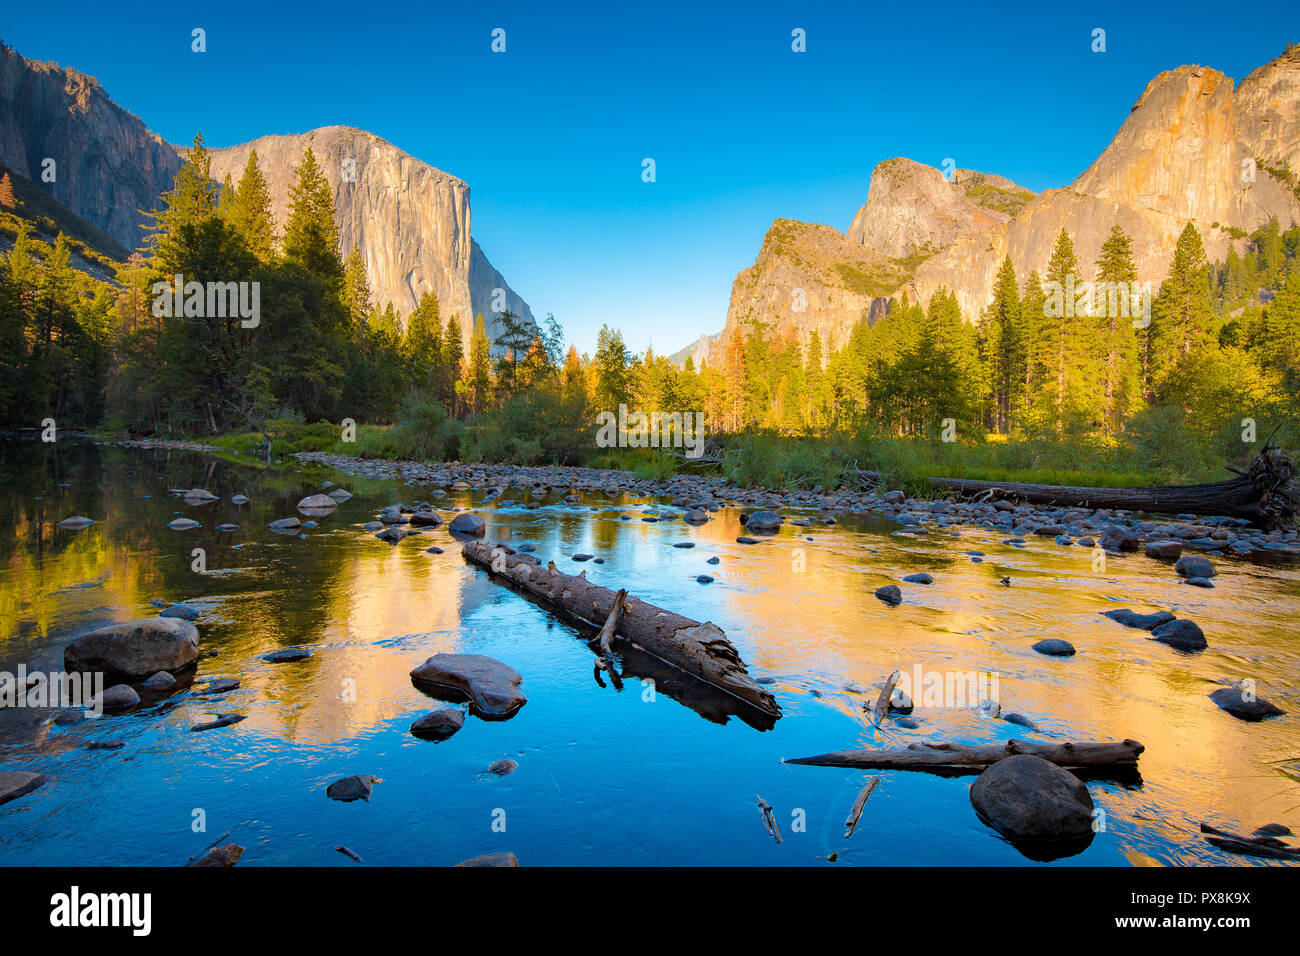 Classic view of scenic Yosemite Valley with famous El Capitan rock climbing summit and idyllic Merced river at sunset, California, USA - Stock Image